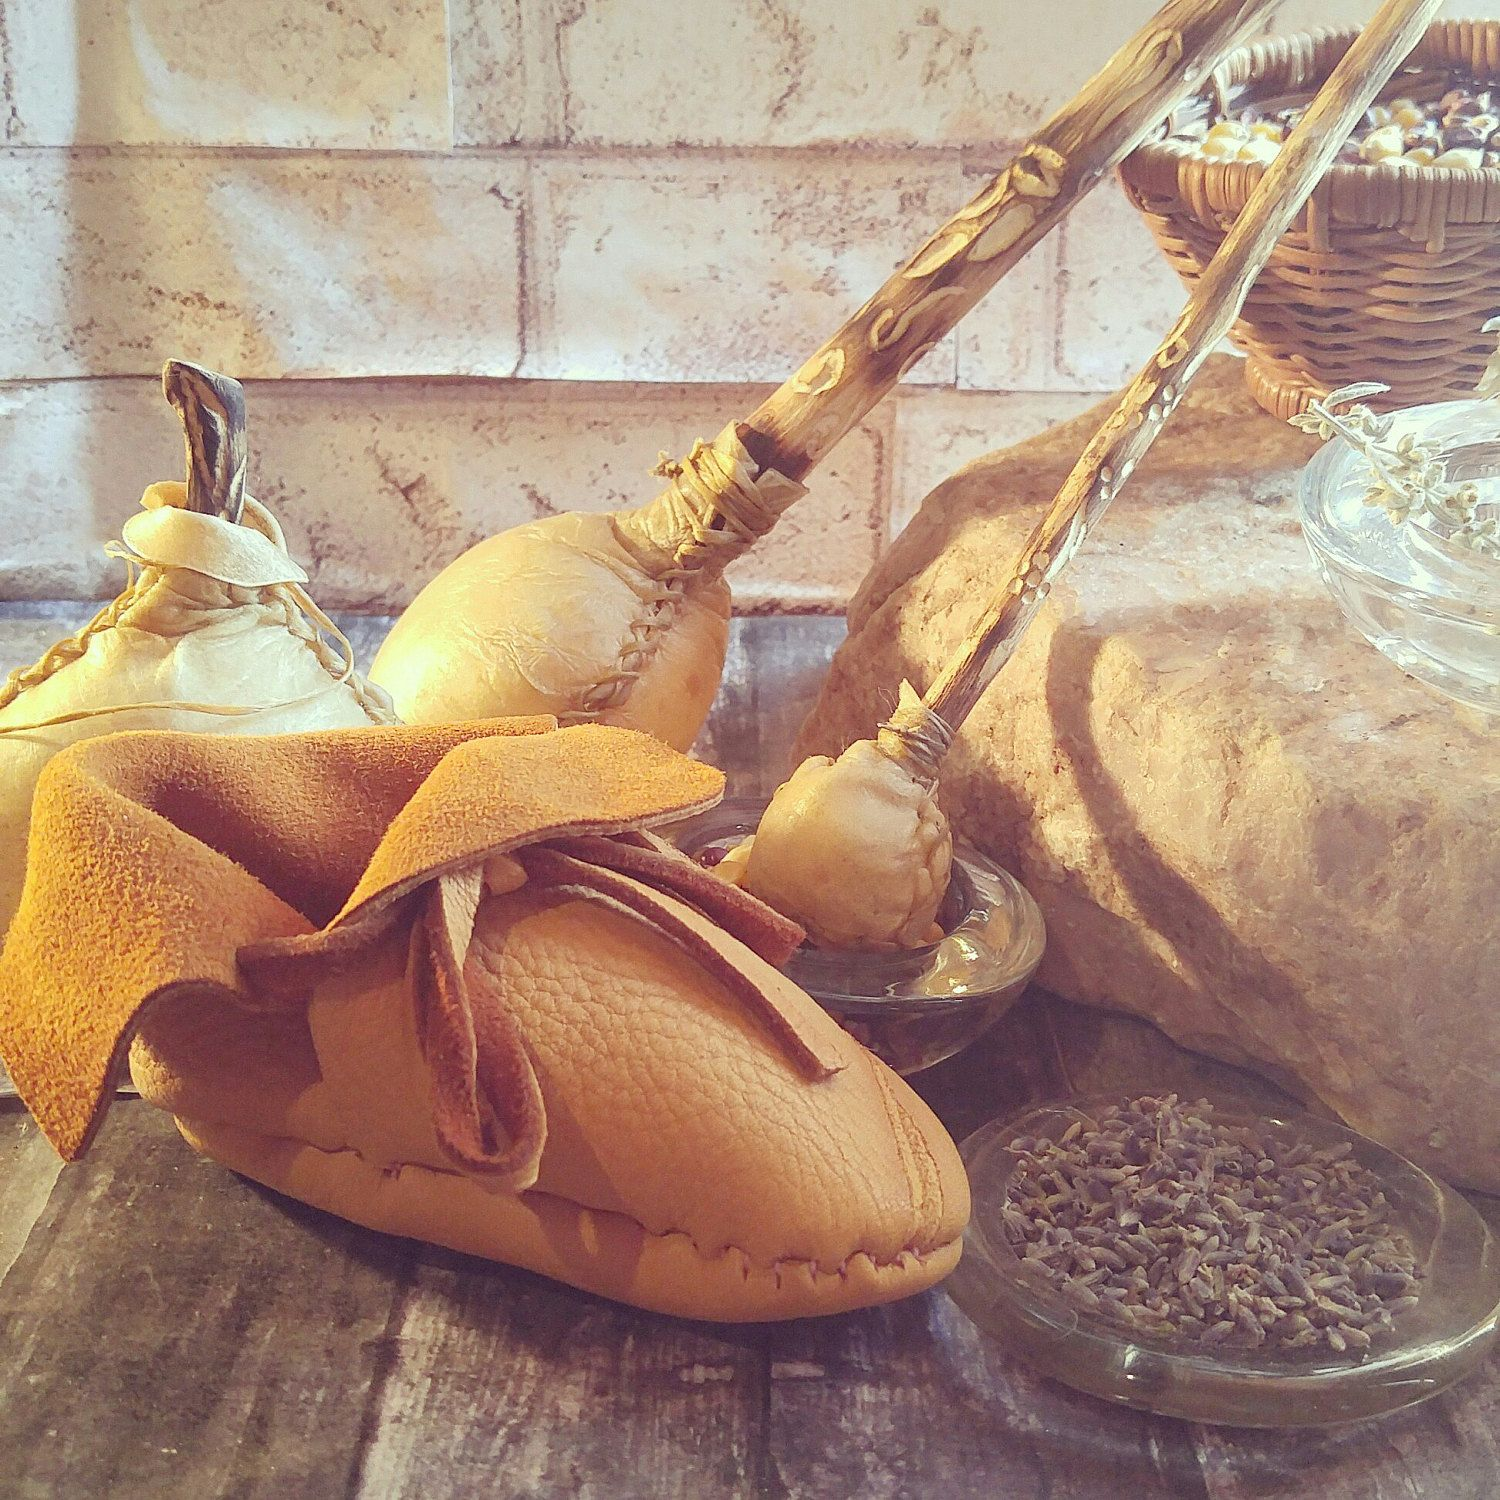 Coming soon, shaman rattles, medicine bags, fertility seed bags, baby rattles, and baby moccasins!